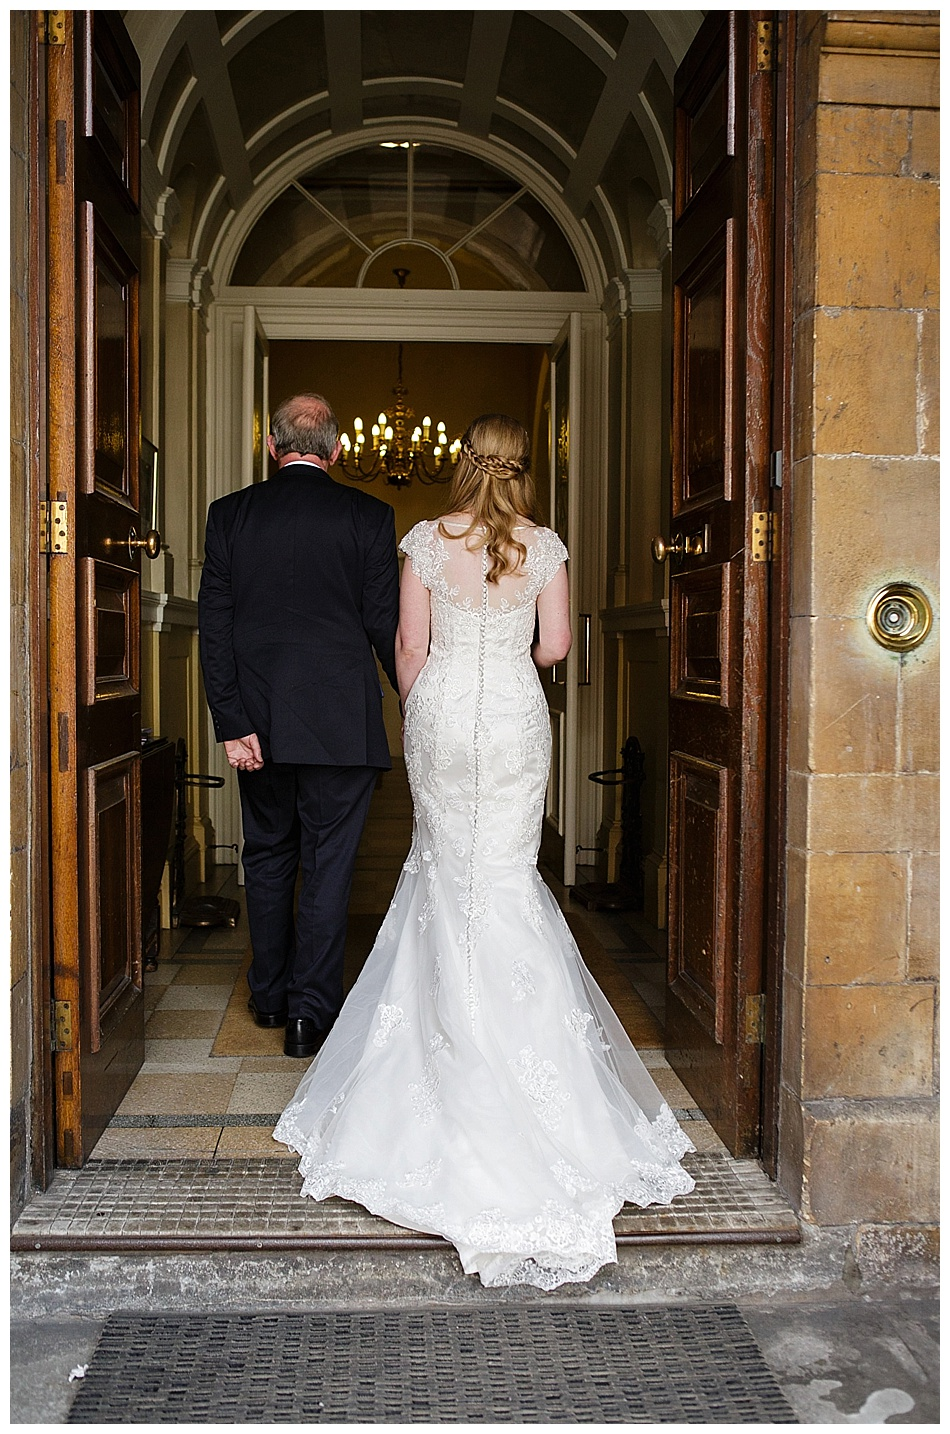 stratford upon avon Registry Office Wedding